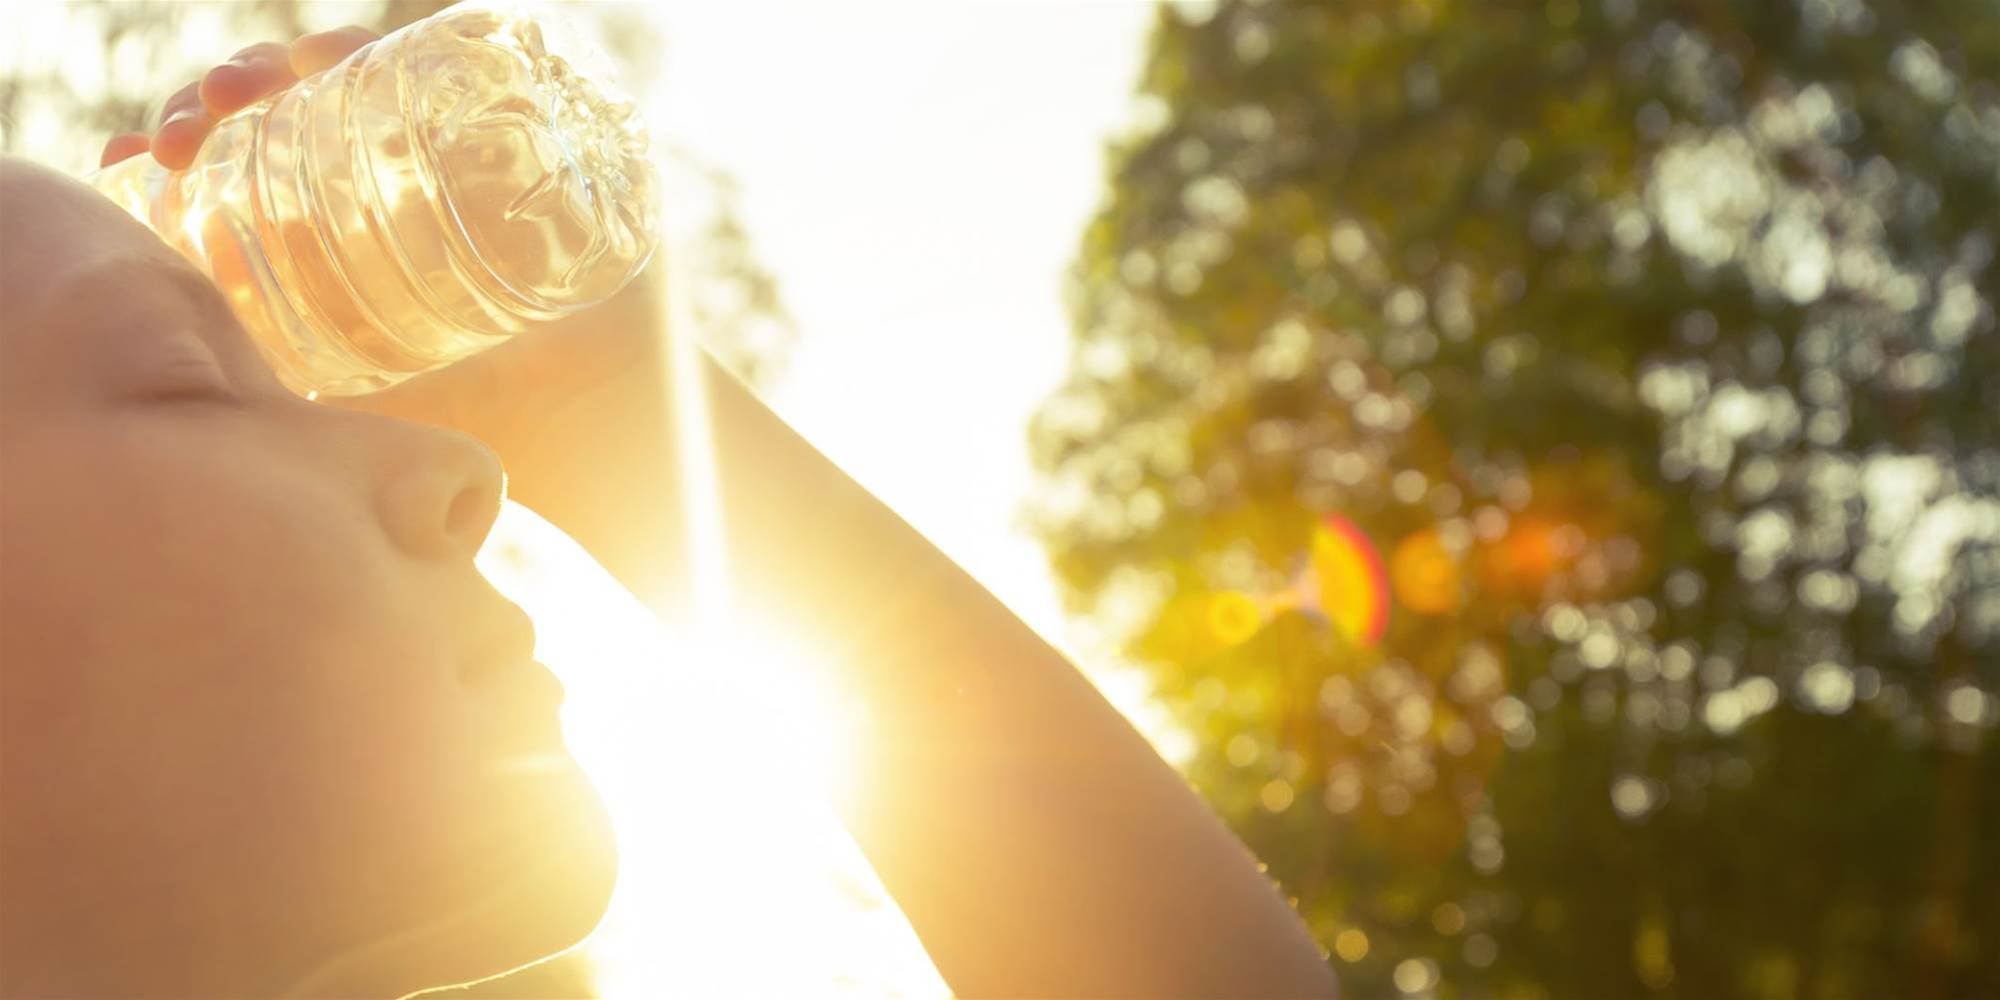 7 Heat Stroke Symptoms Everyone Should Be Able To Recognize